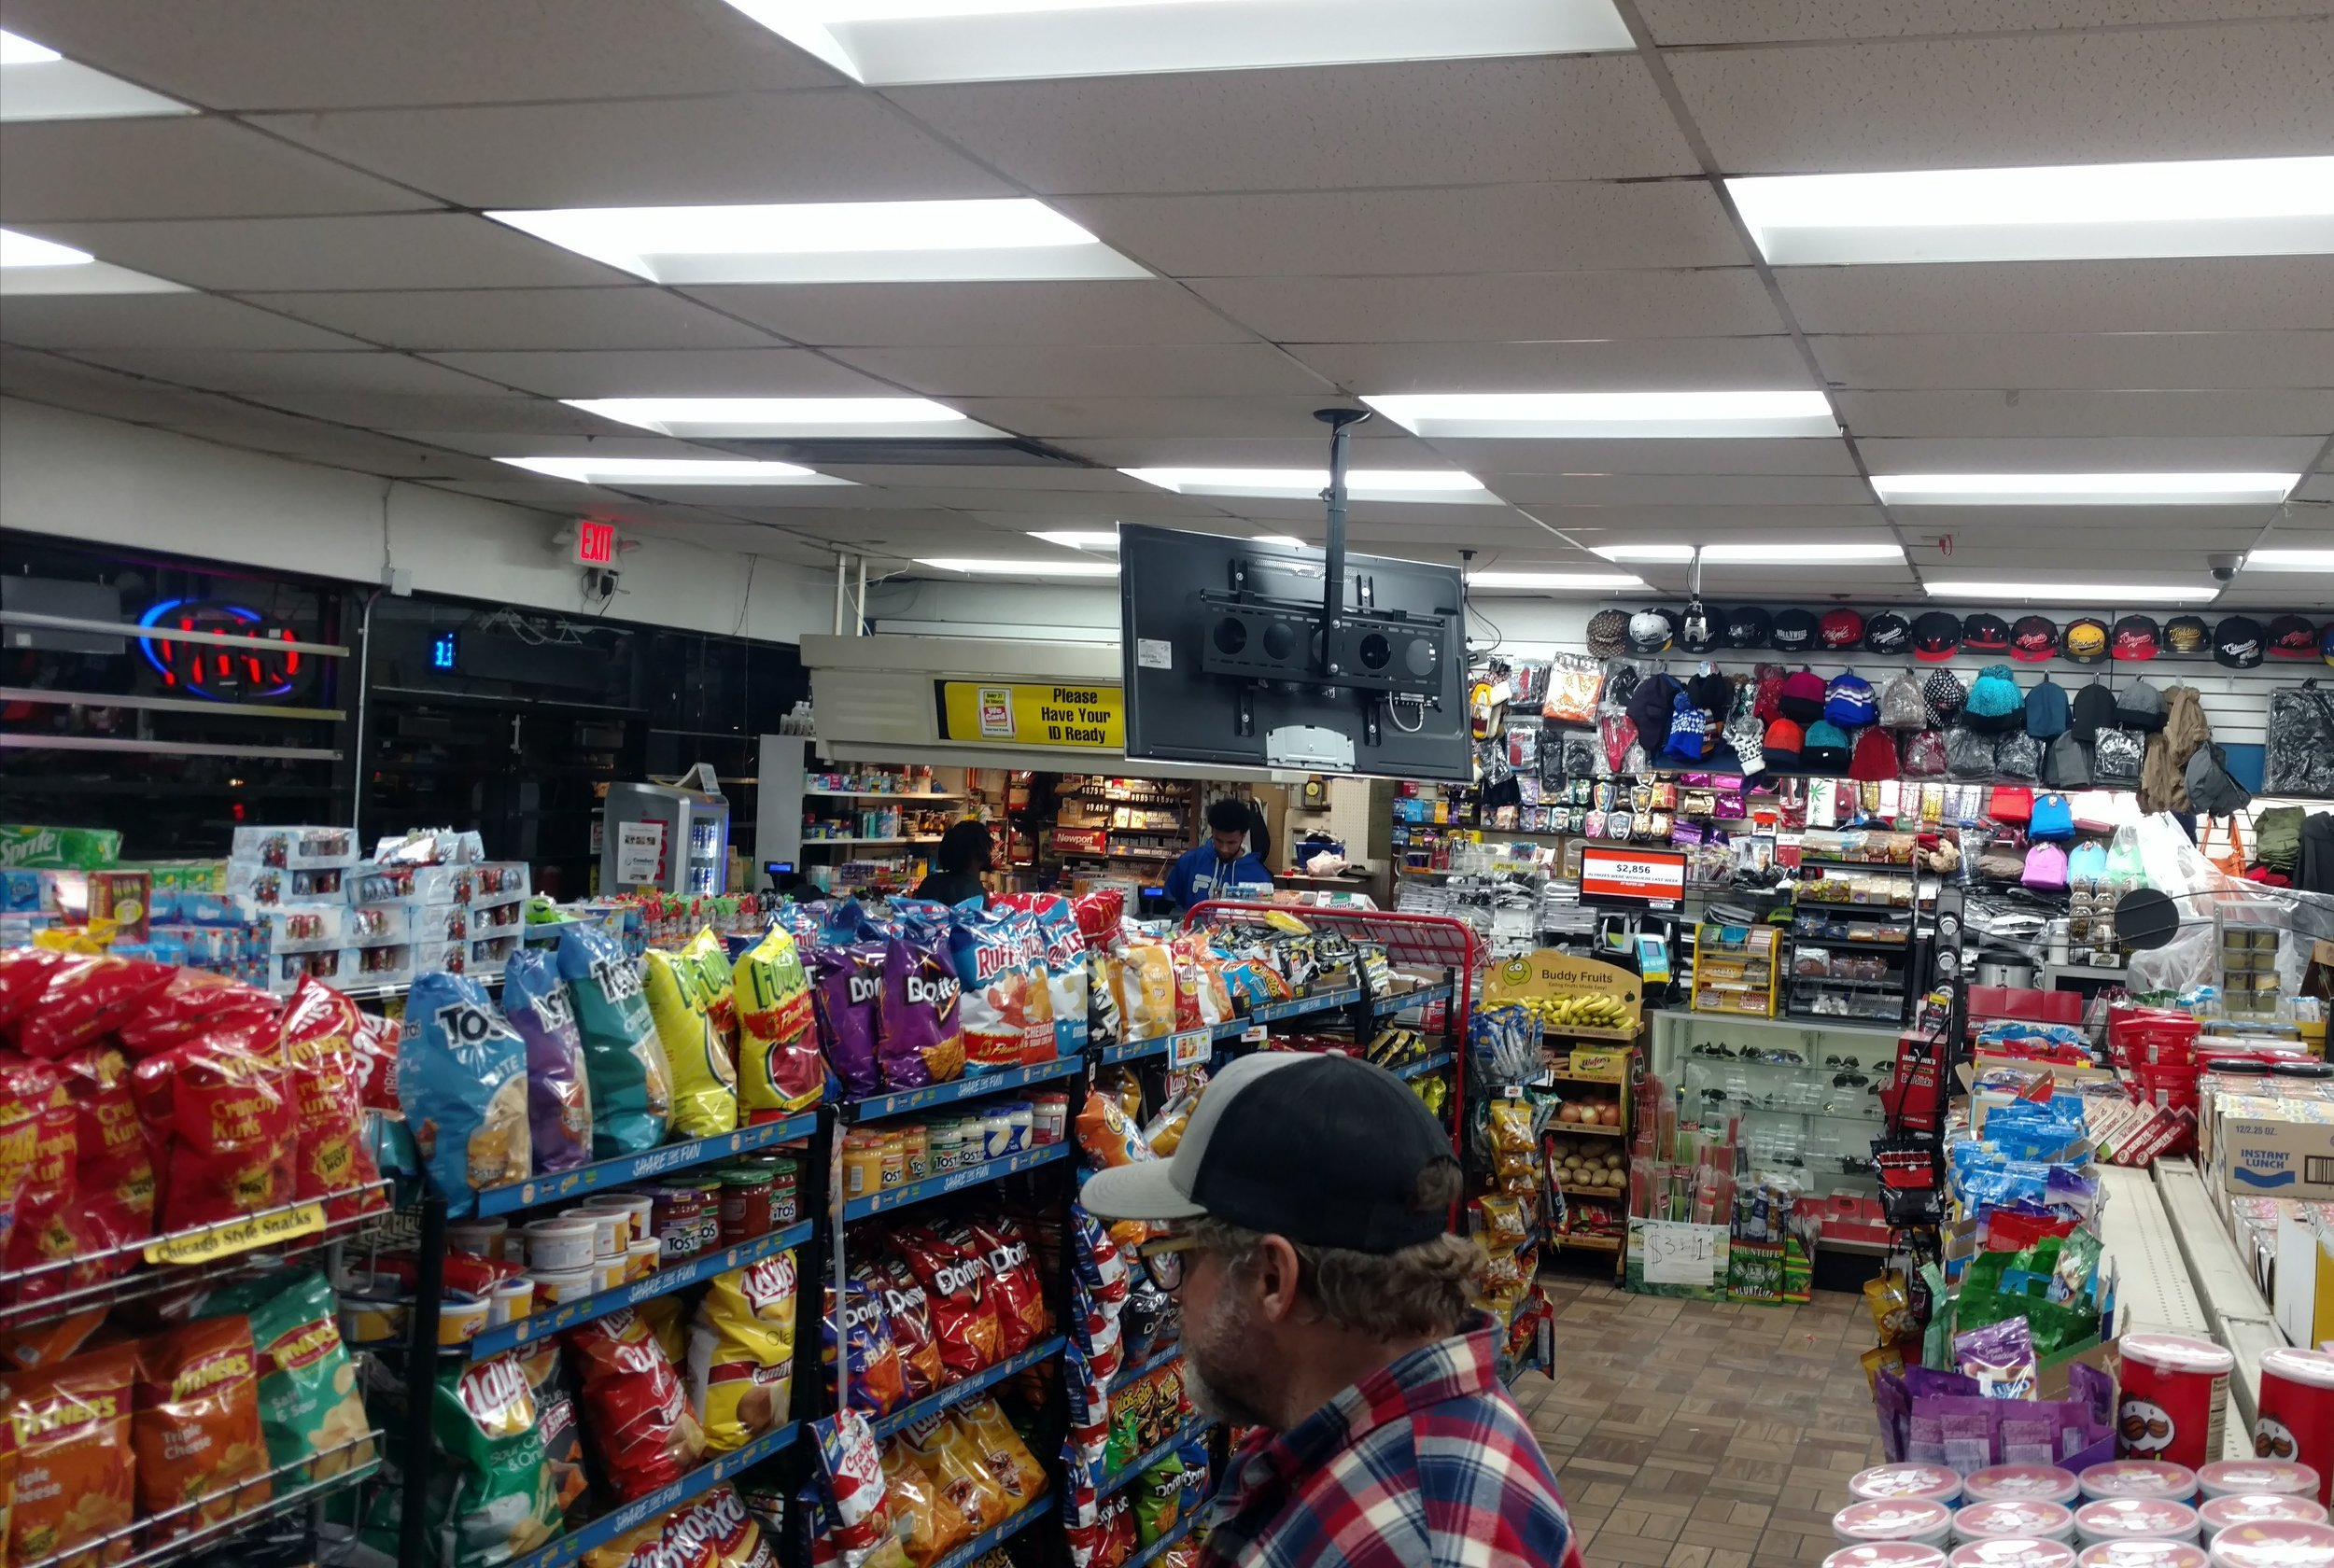 Our convenience store. (That's Husband in the foreground eyeballing the chips.)